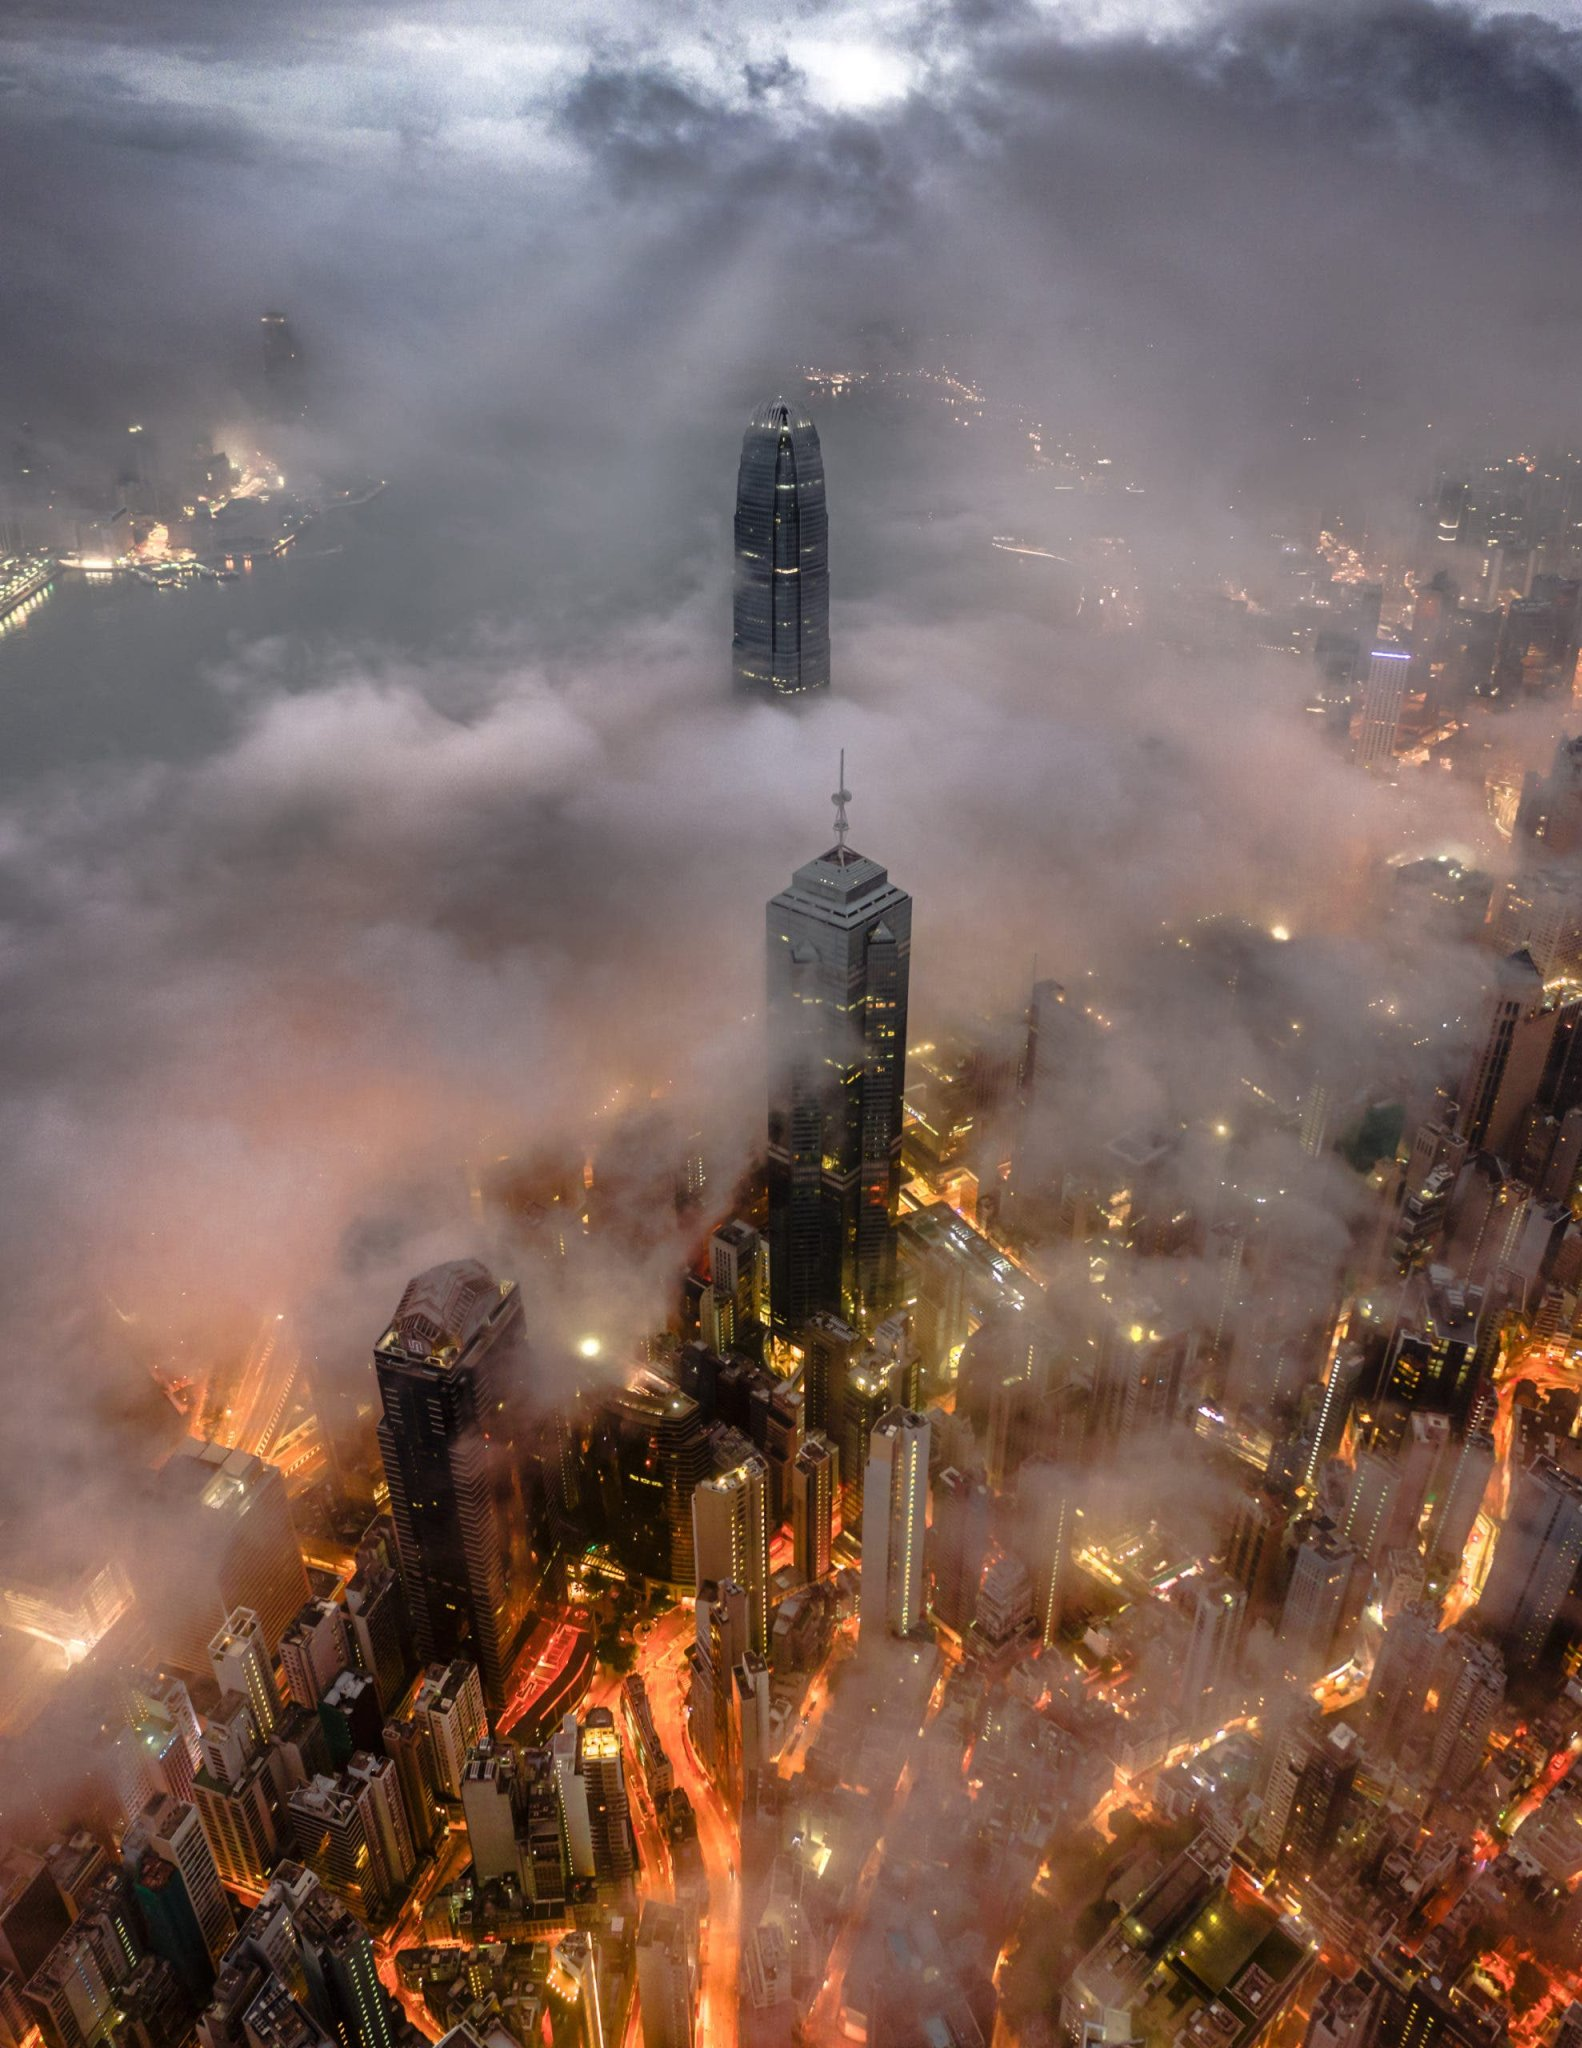 Blair Sugarman: The Magic of Cityscape Photography and Bad Weather